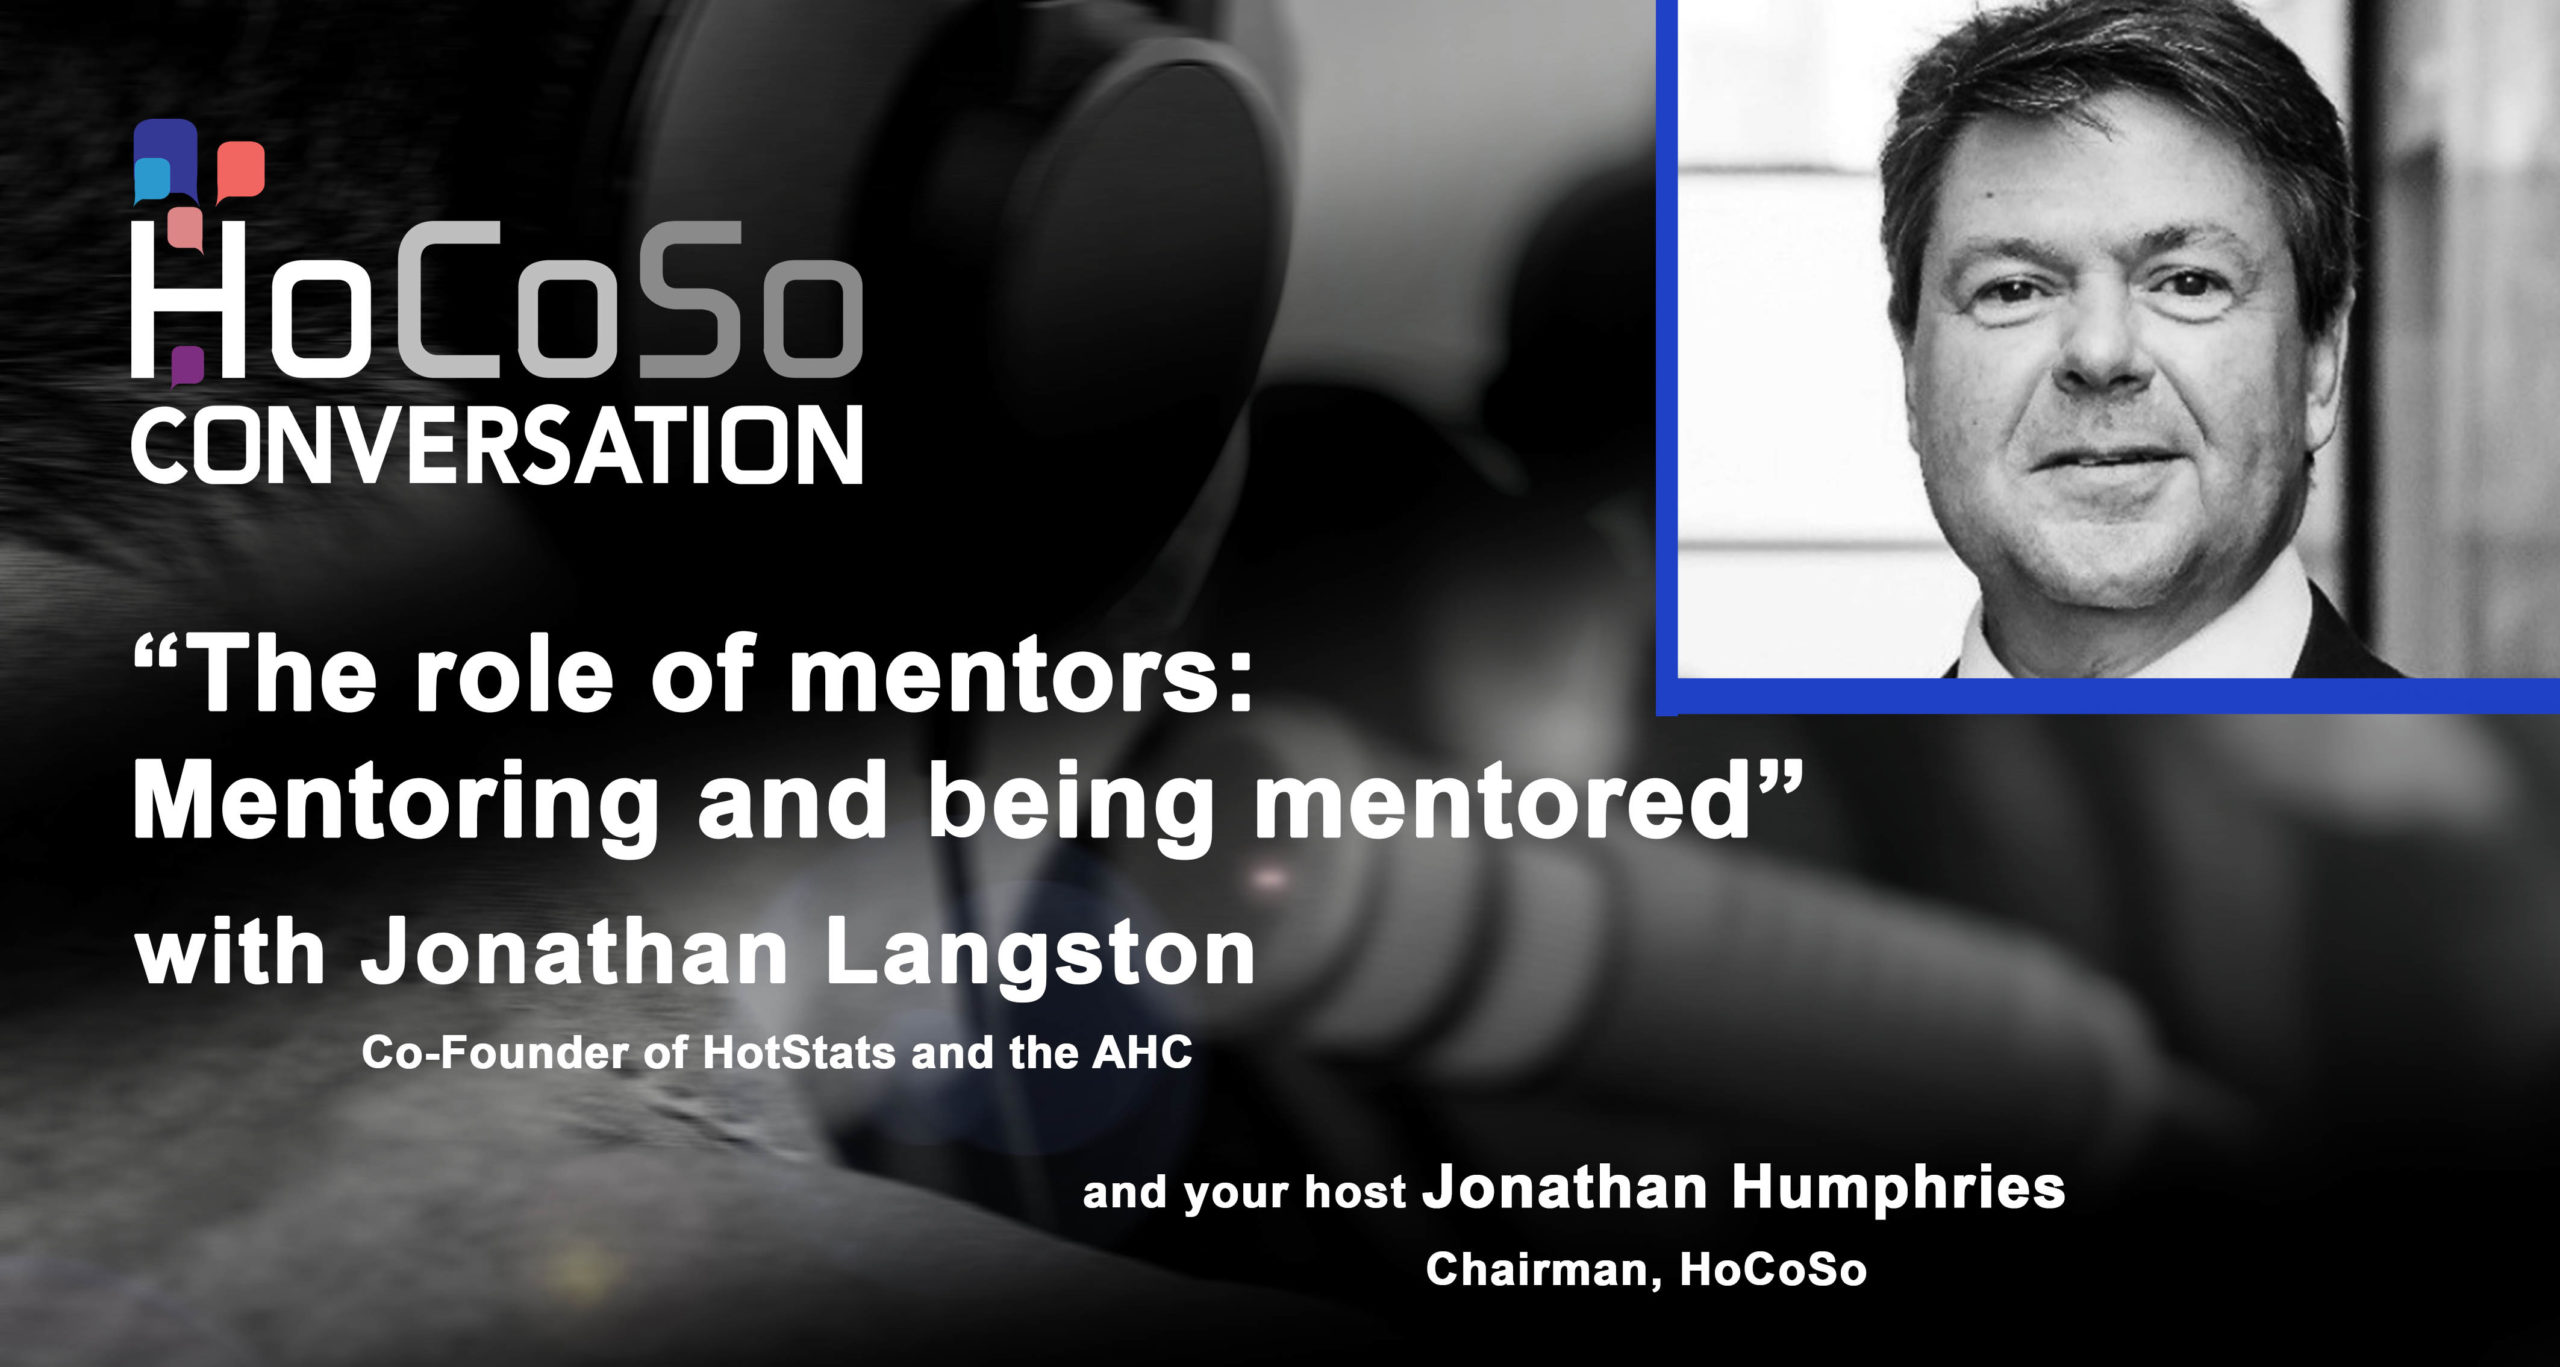 HoCoSo CONVERSATION - Podcasts for the hospitality industry - Jonathan Langston